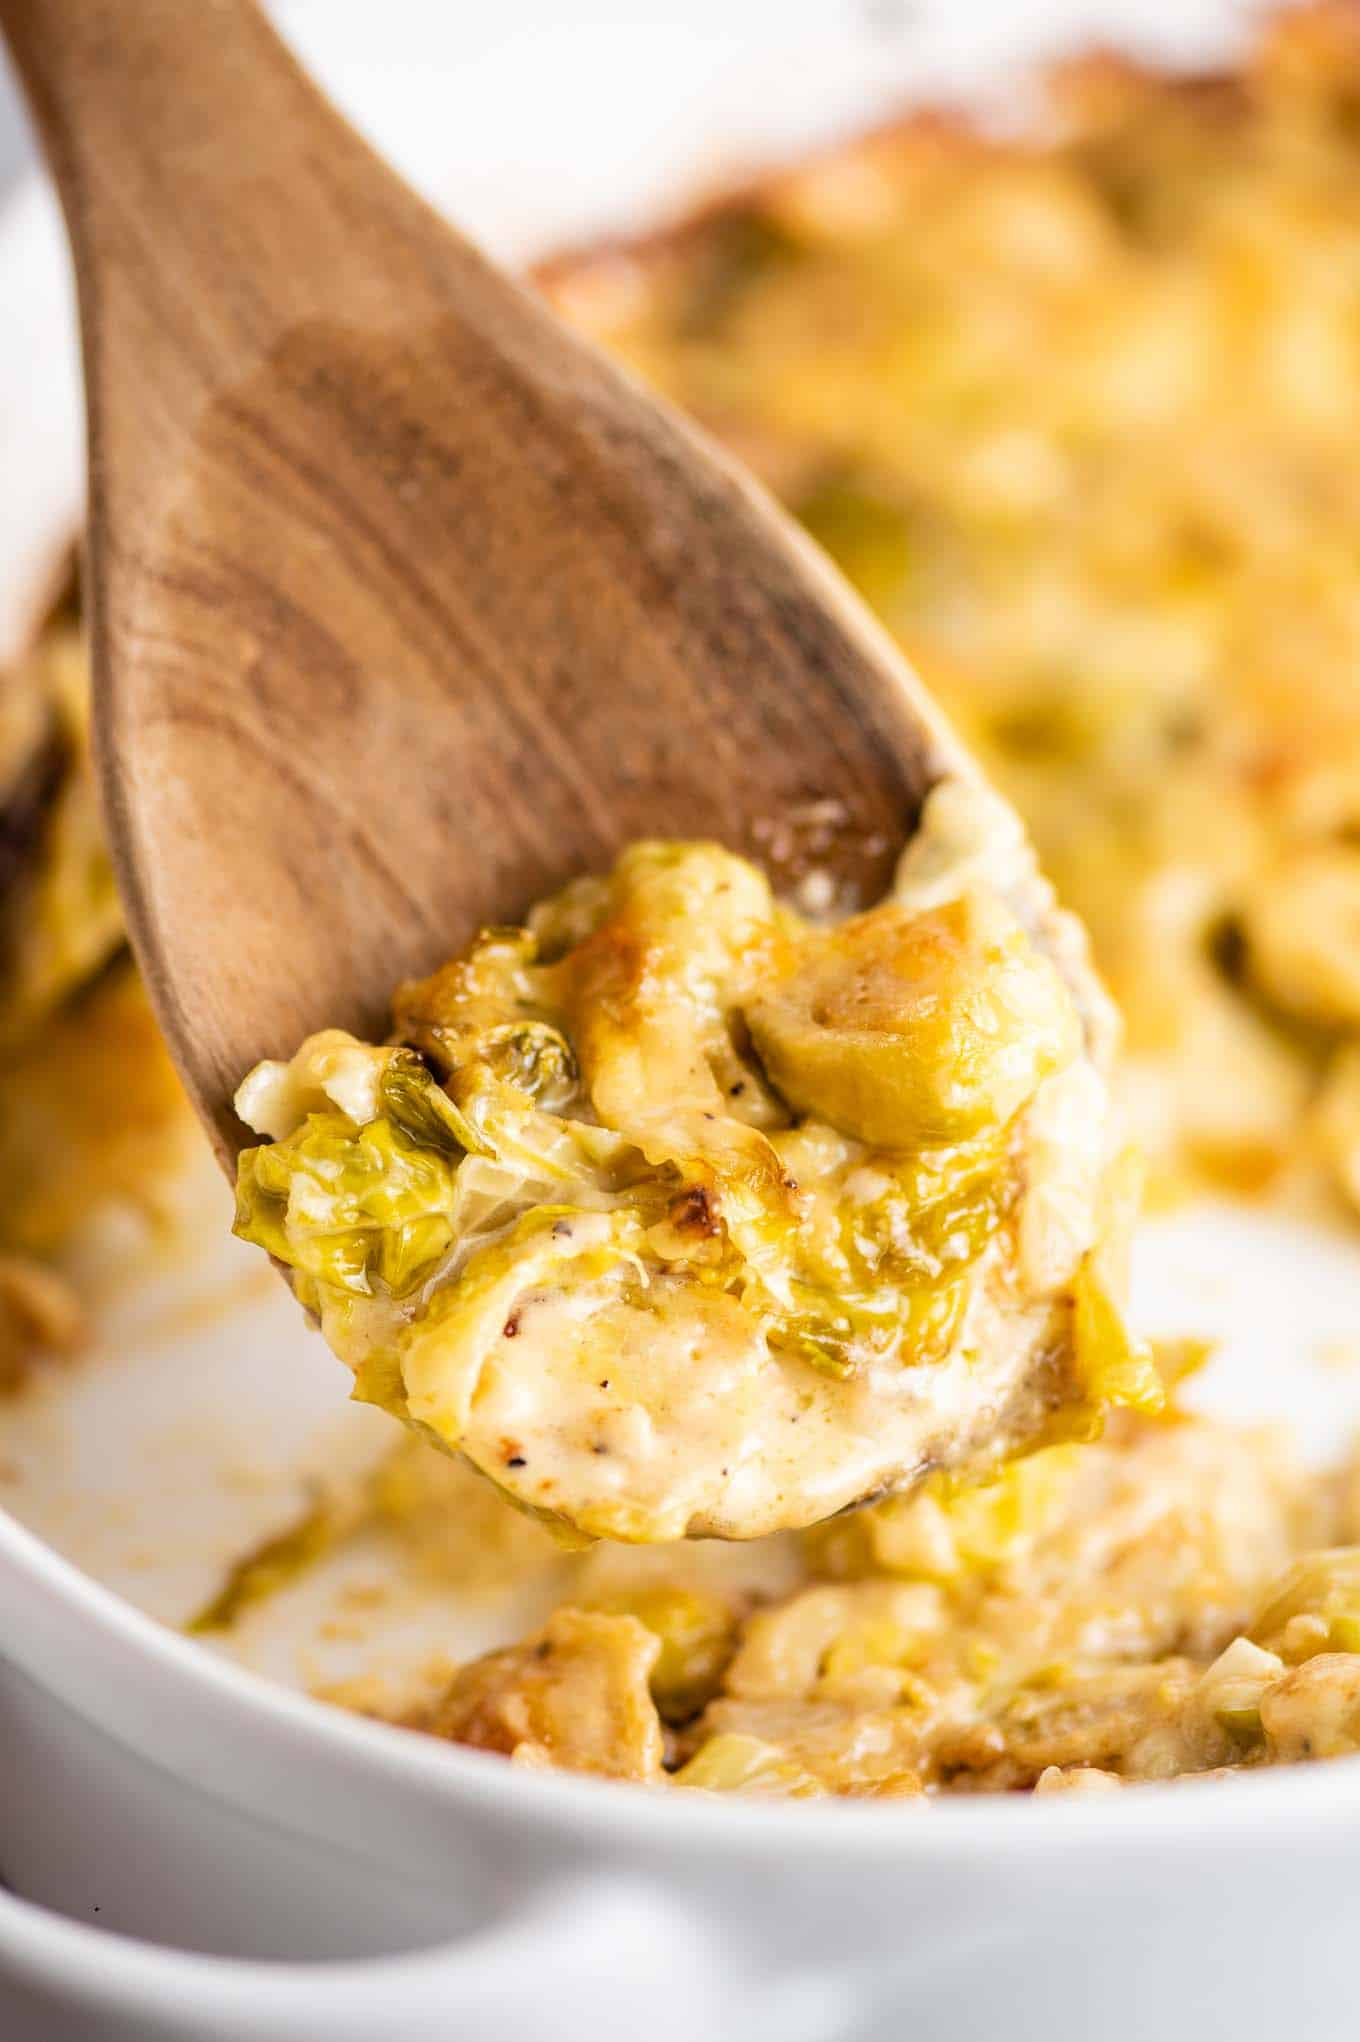 brussels sprouts gratin on a wooden spoon